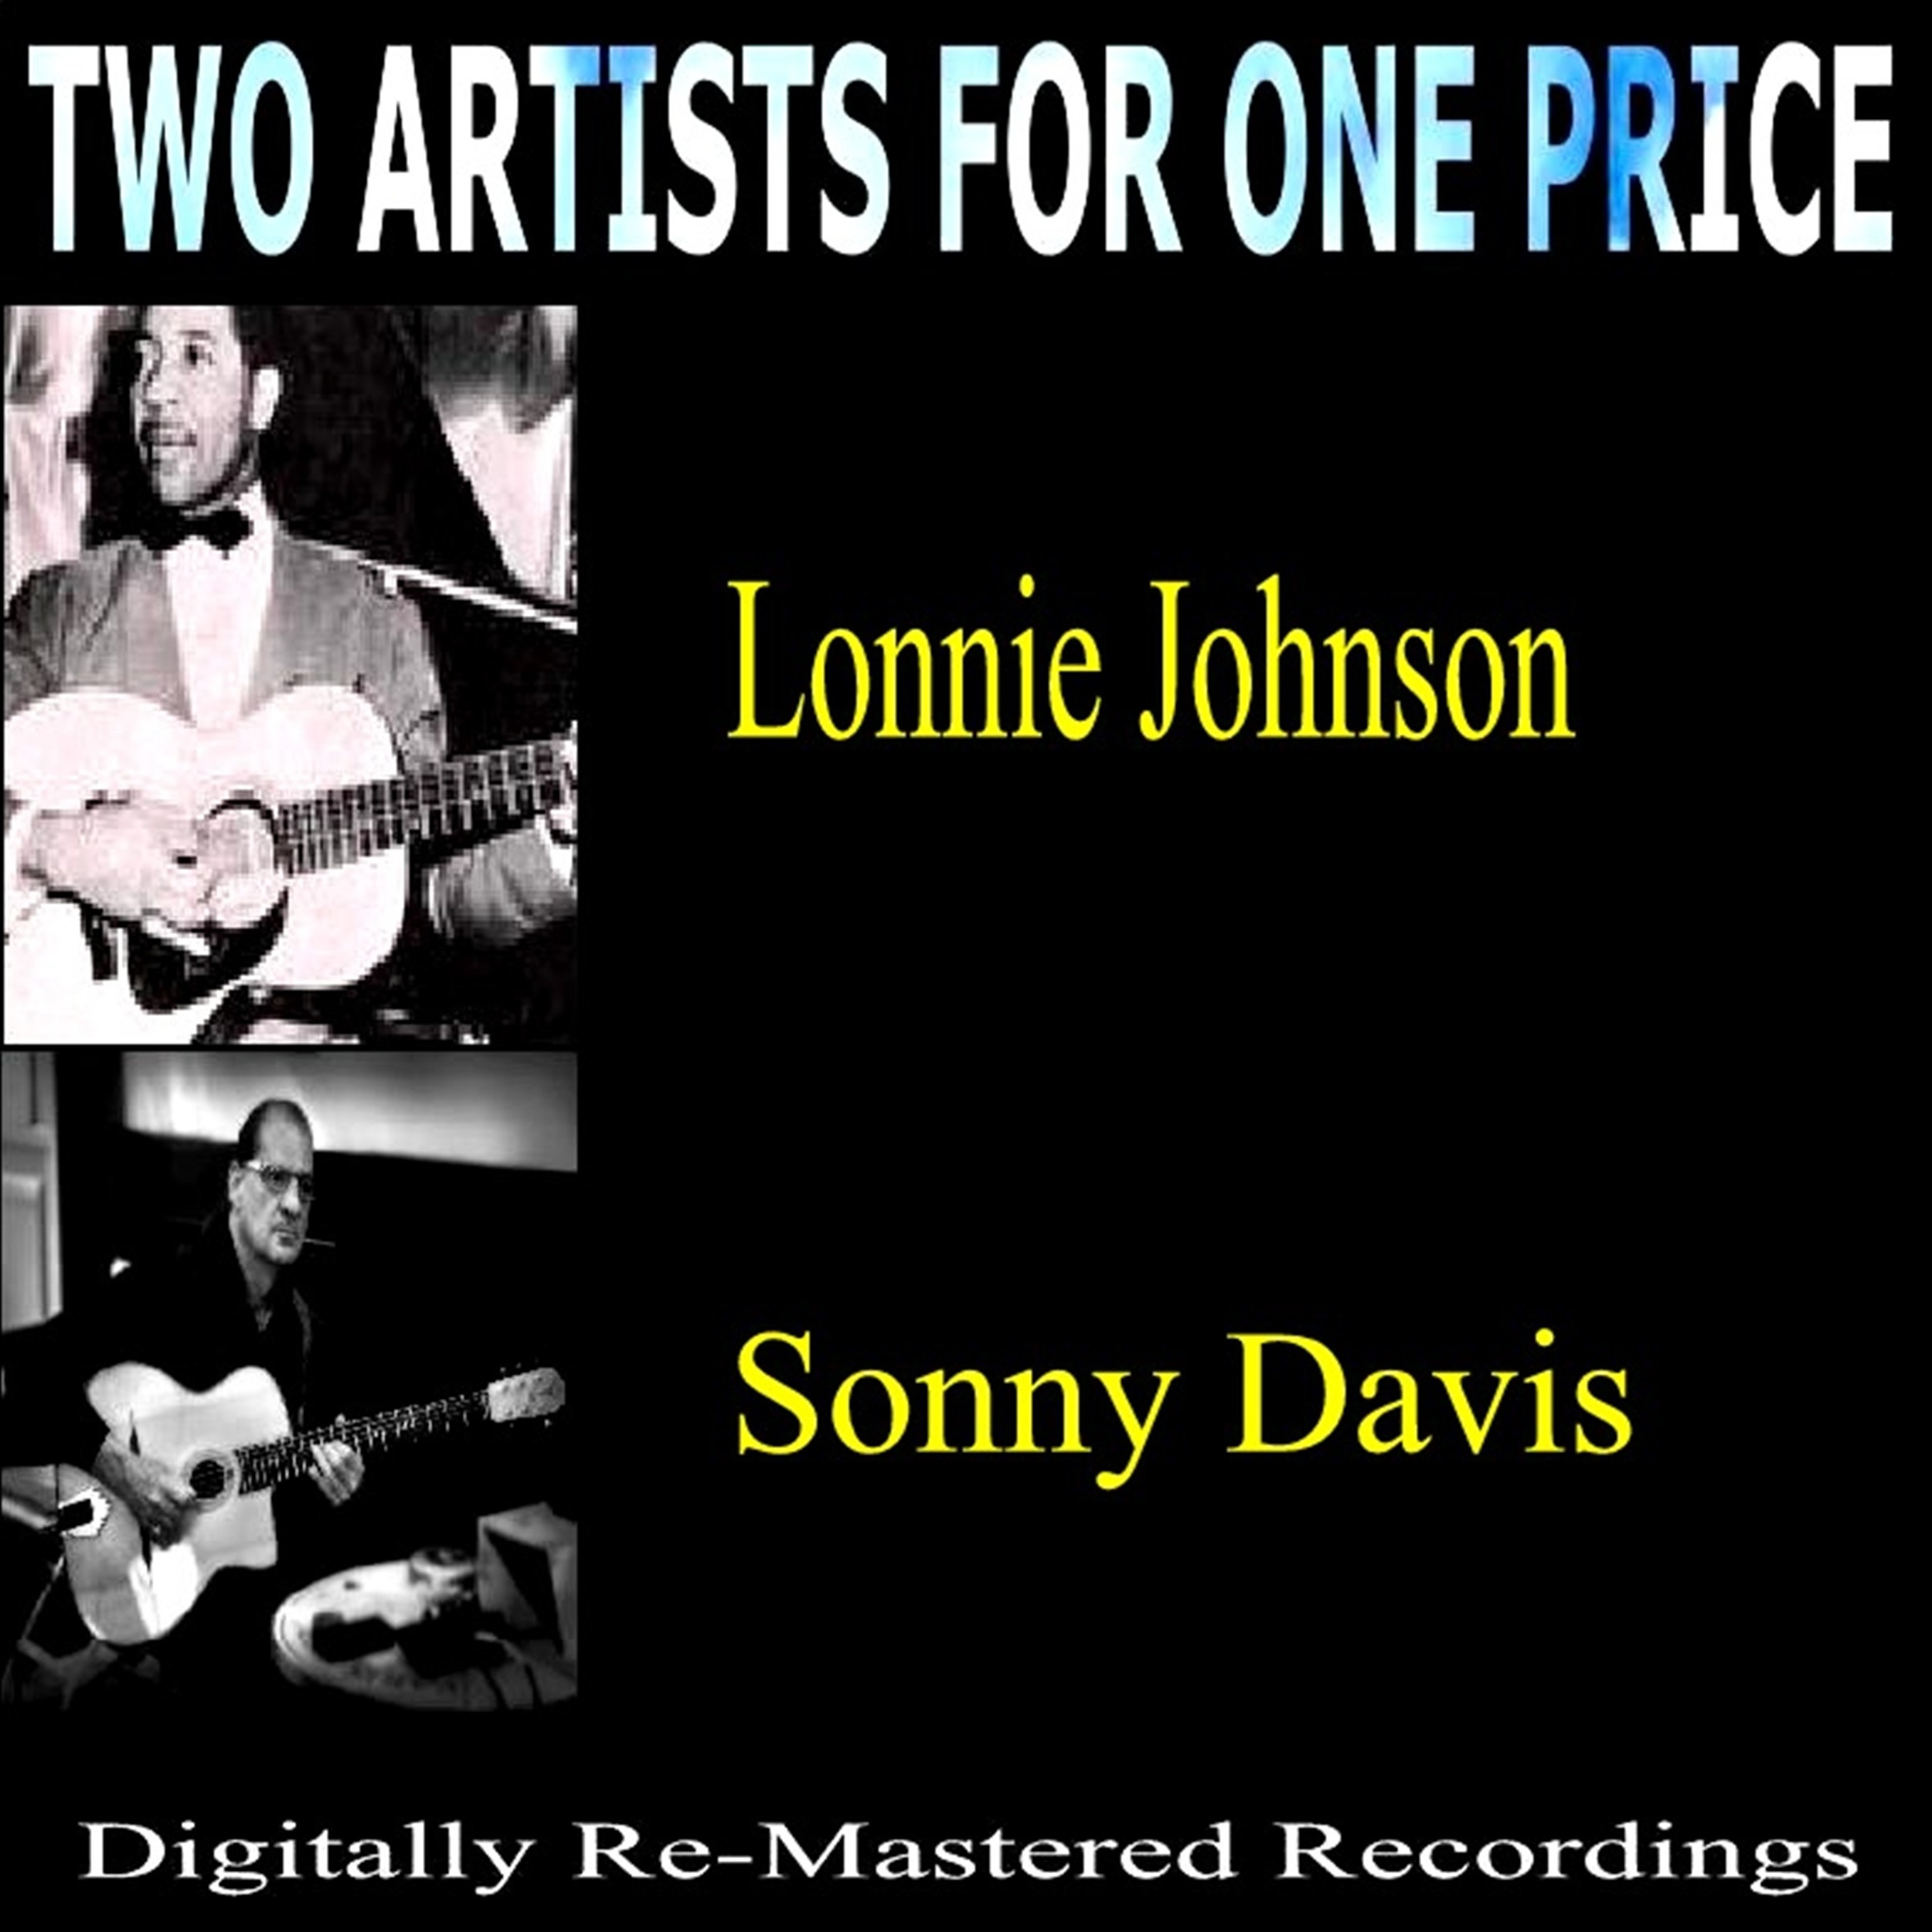 Two Artists For One Price - Lonnie Johnson & Sonny Davis